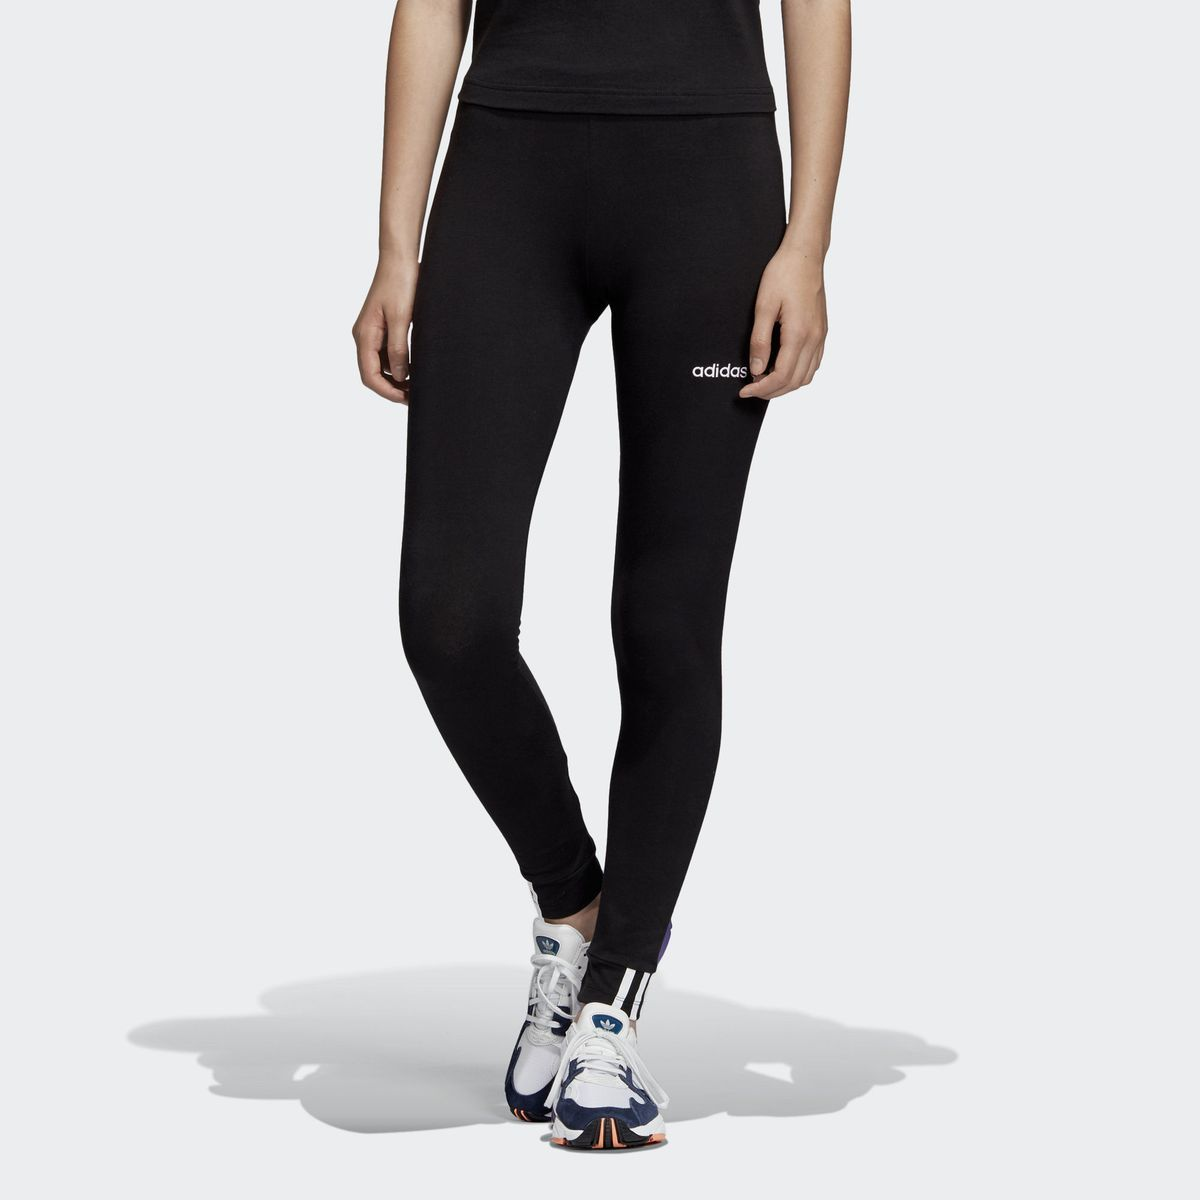 Et CoeezeProducts Style AdidasLeggings Tight Vestimentaire roBCxde